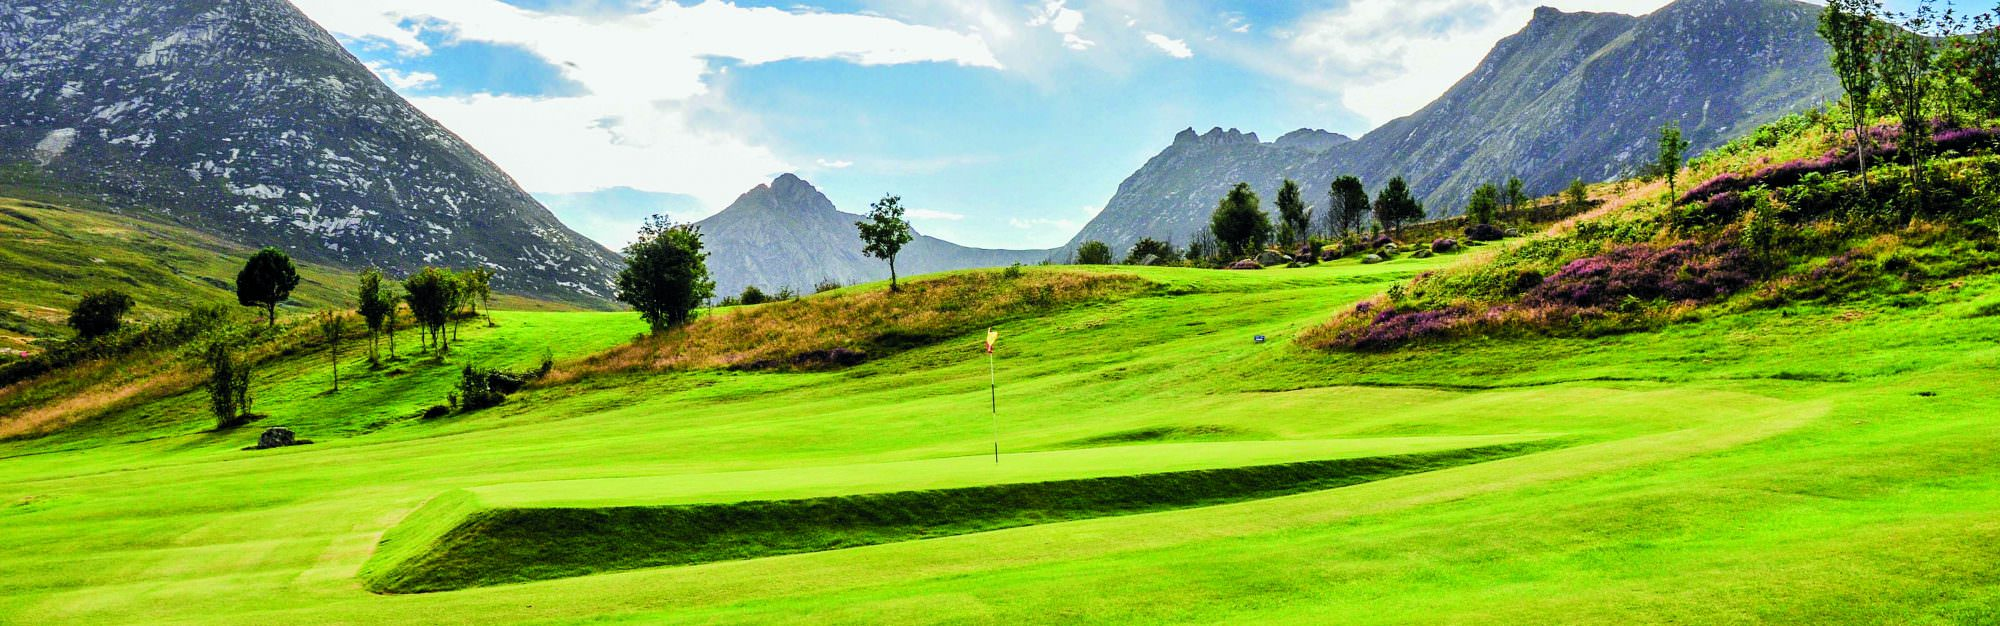 Why you should find time to play nine holes in Scotland